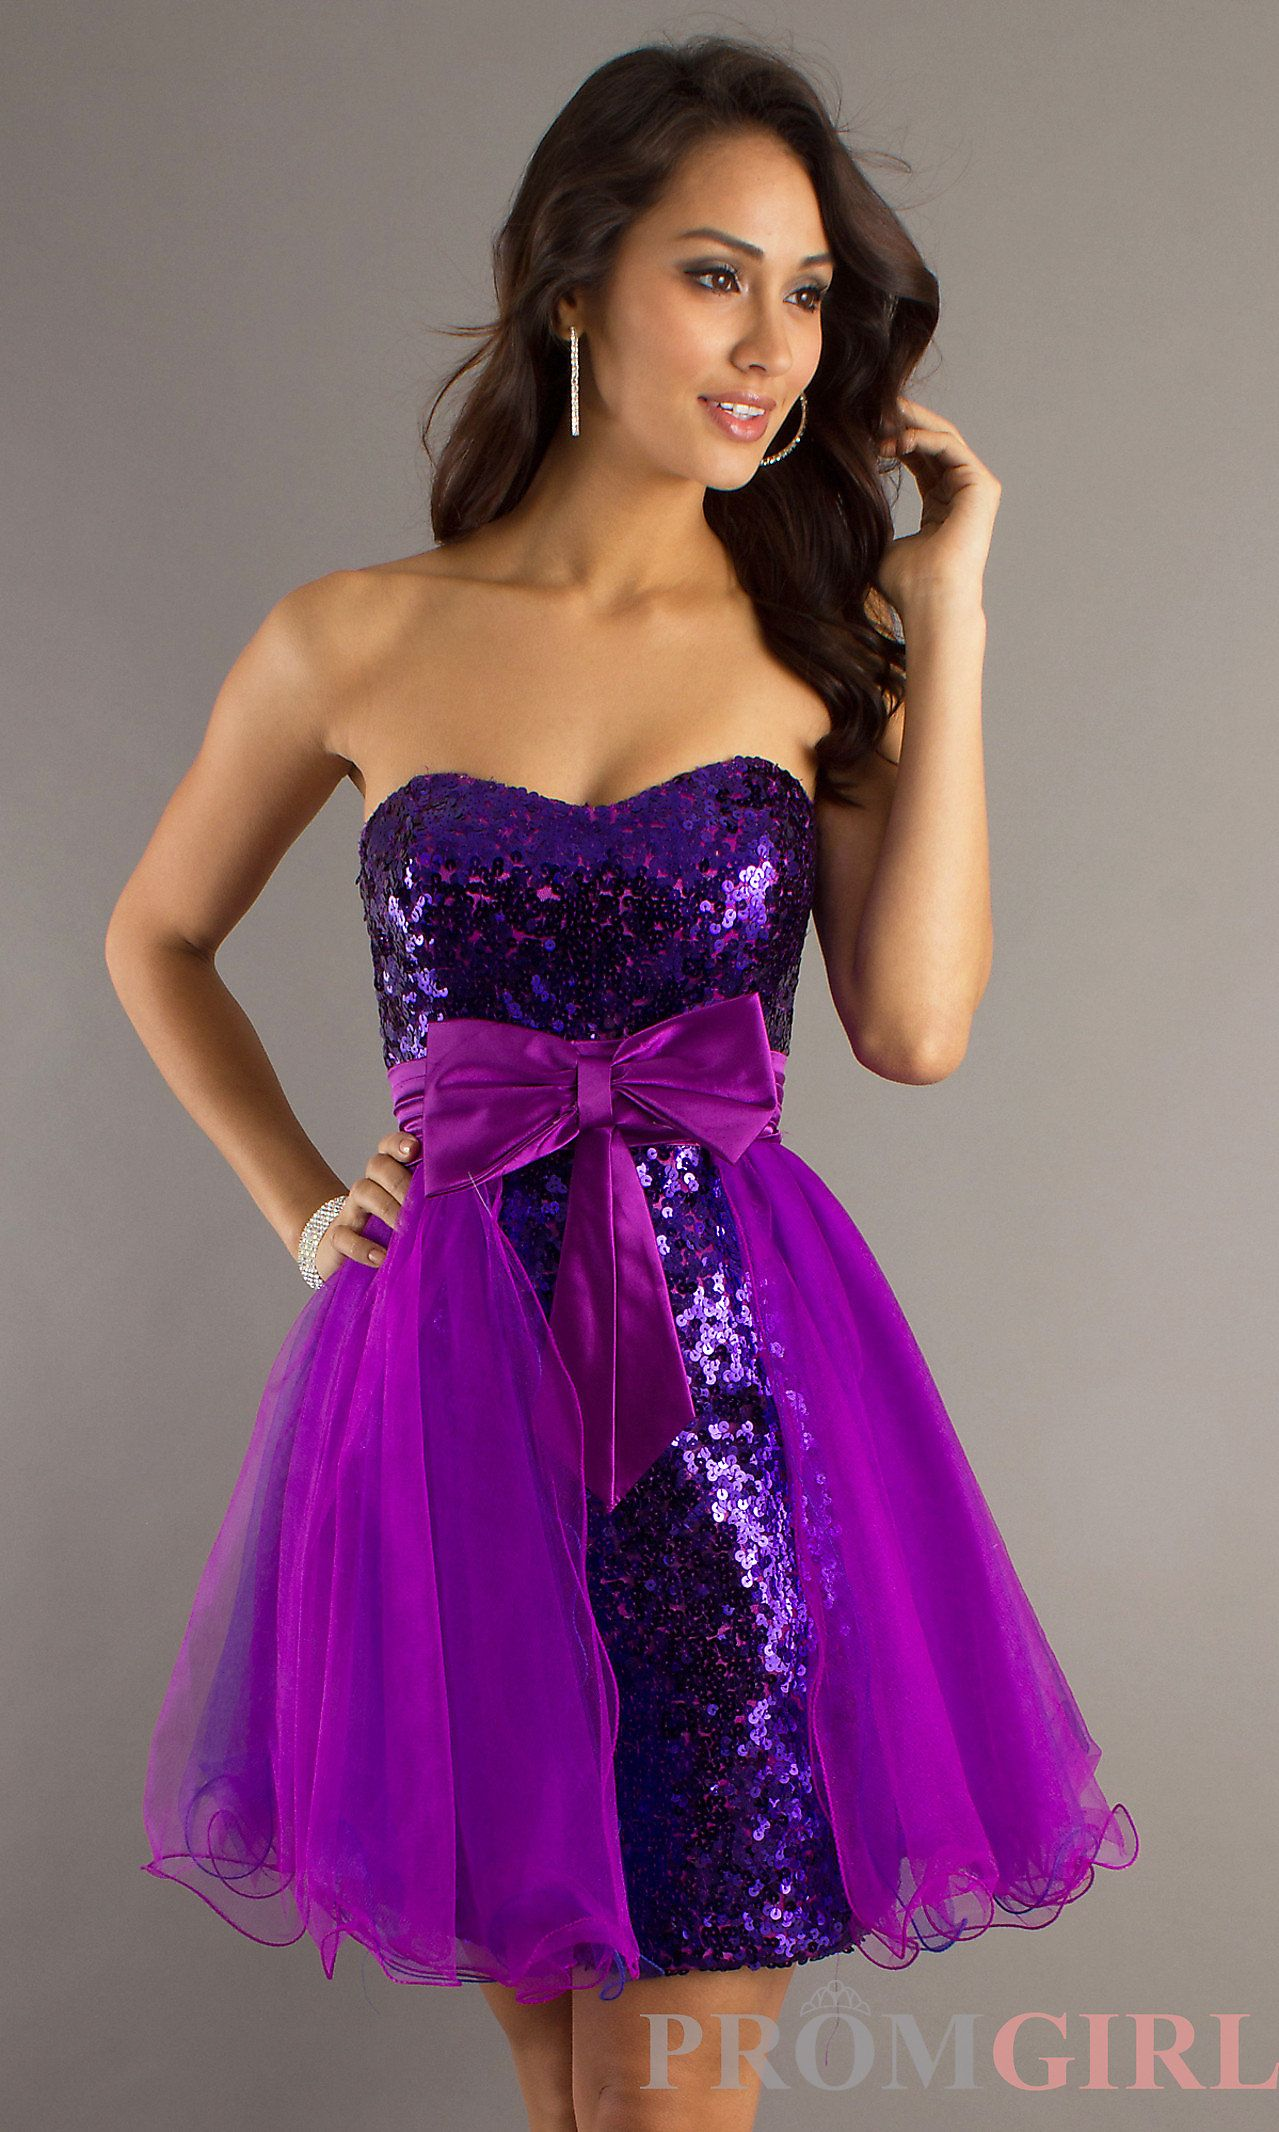 Prettyyy for commencement cool pics pinterest prom formal and